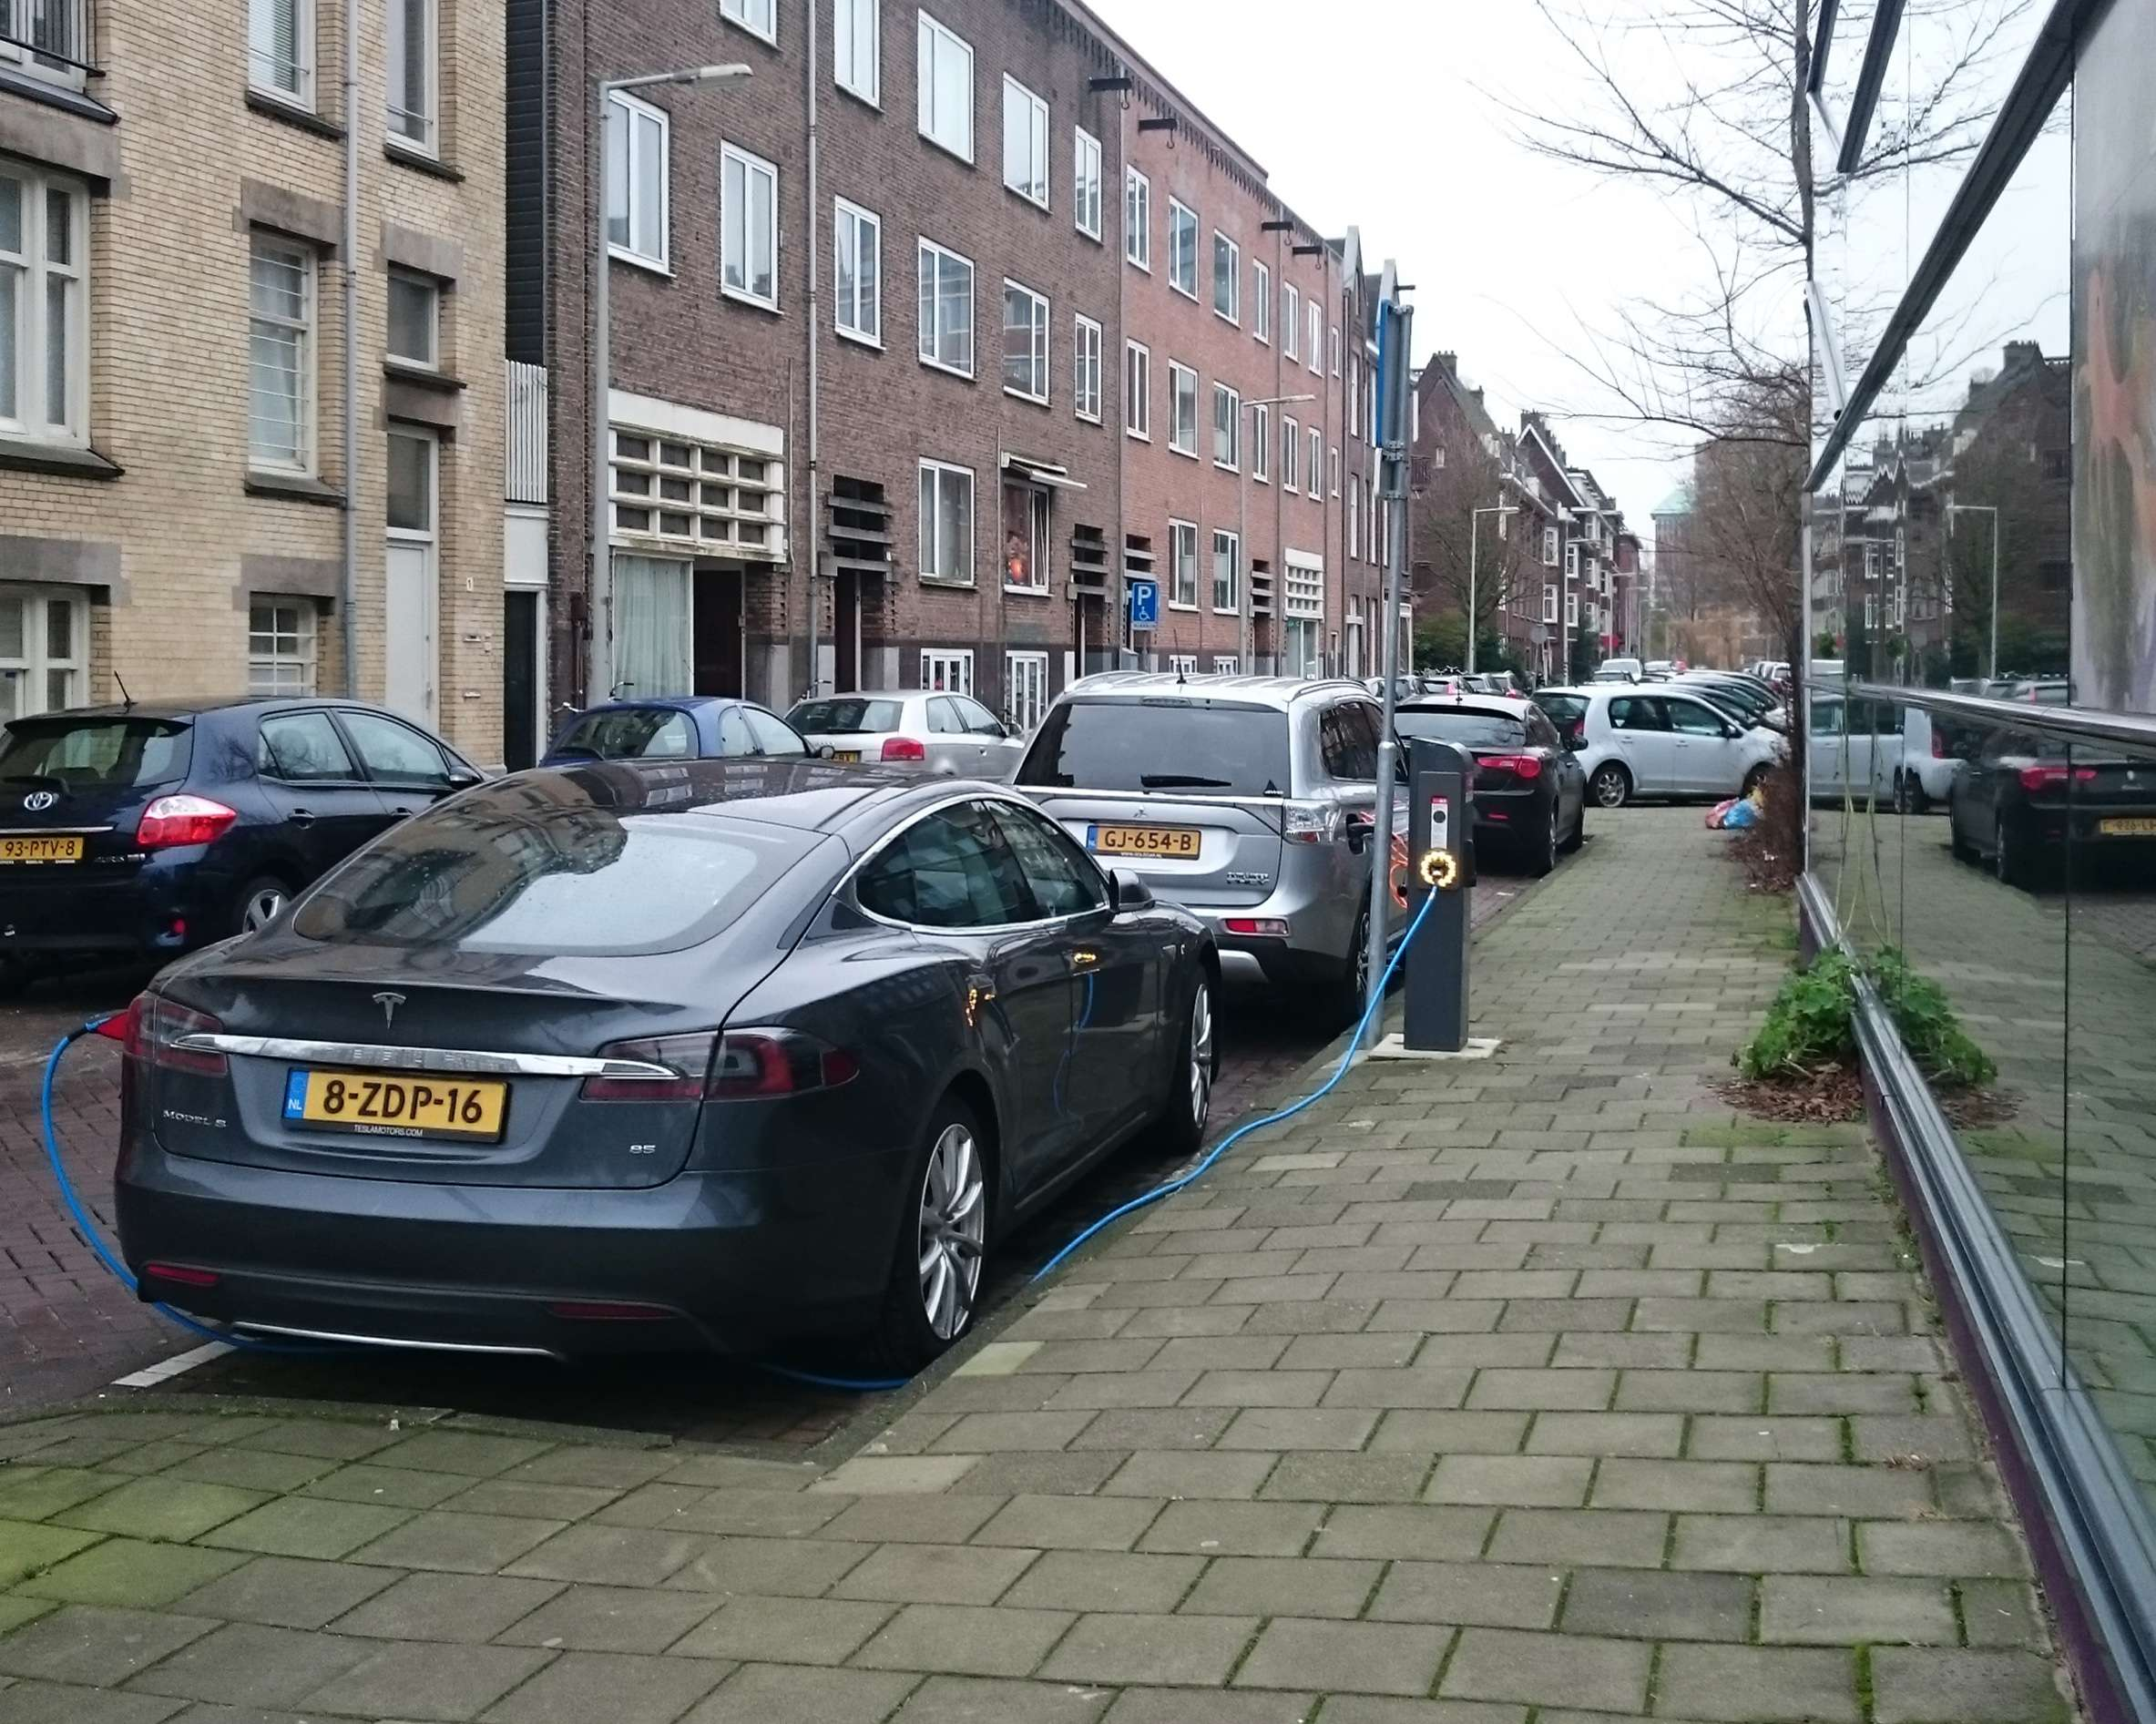 A Tesla vehicle parked on an Amsterdam street. (Image Credit: dmitryelj)